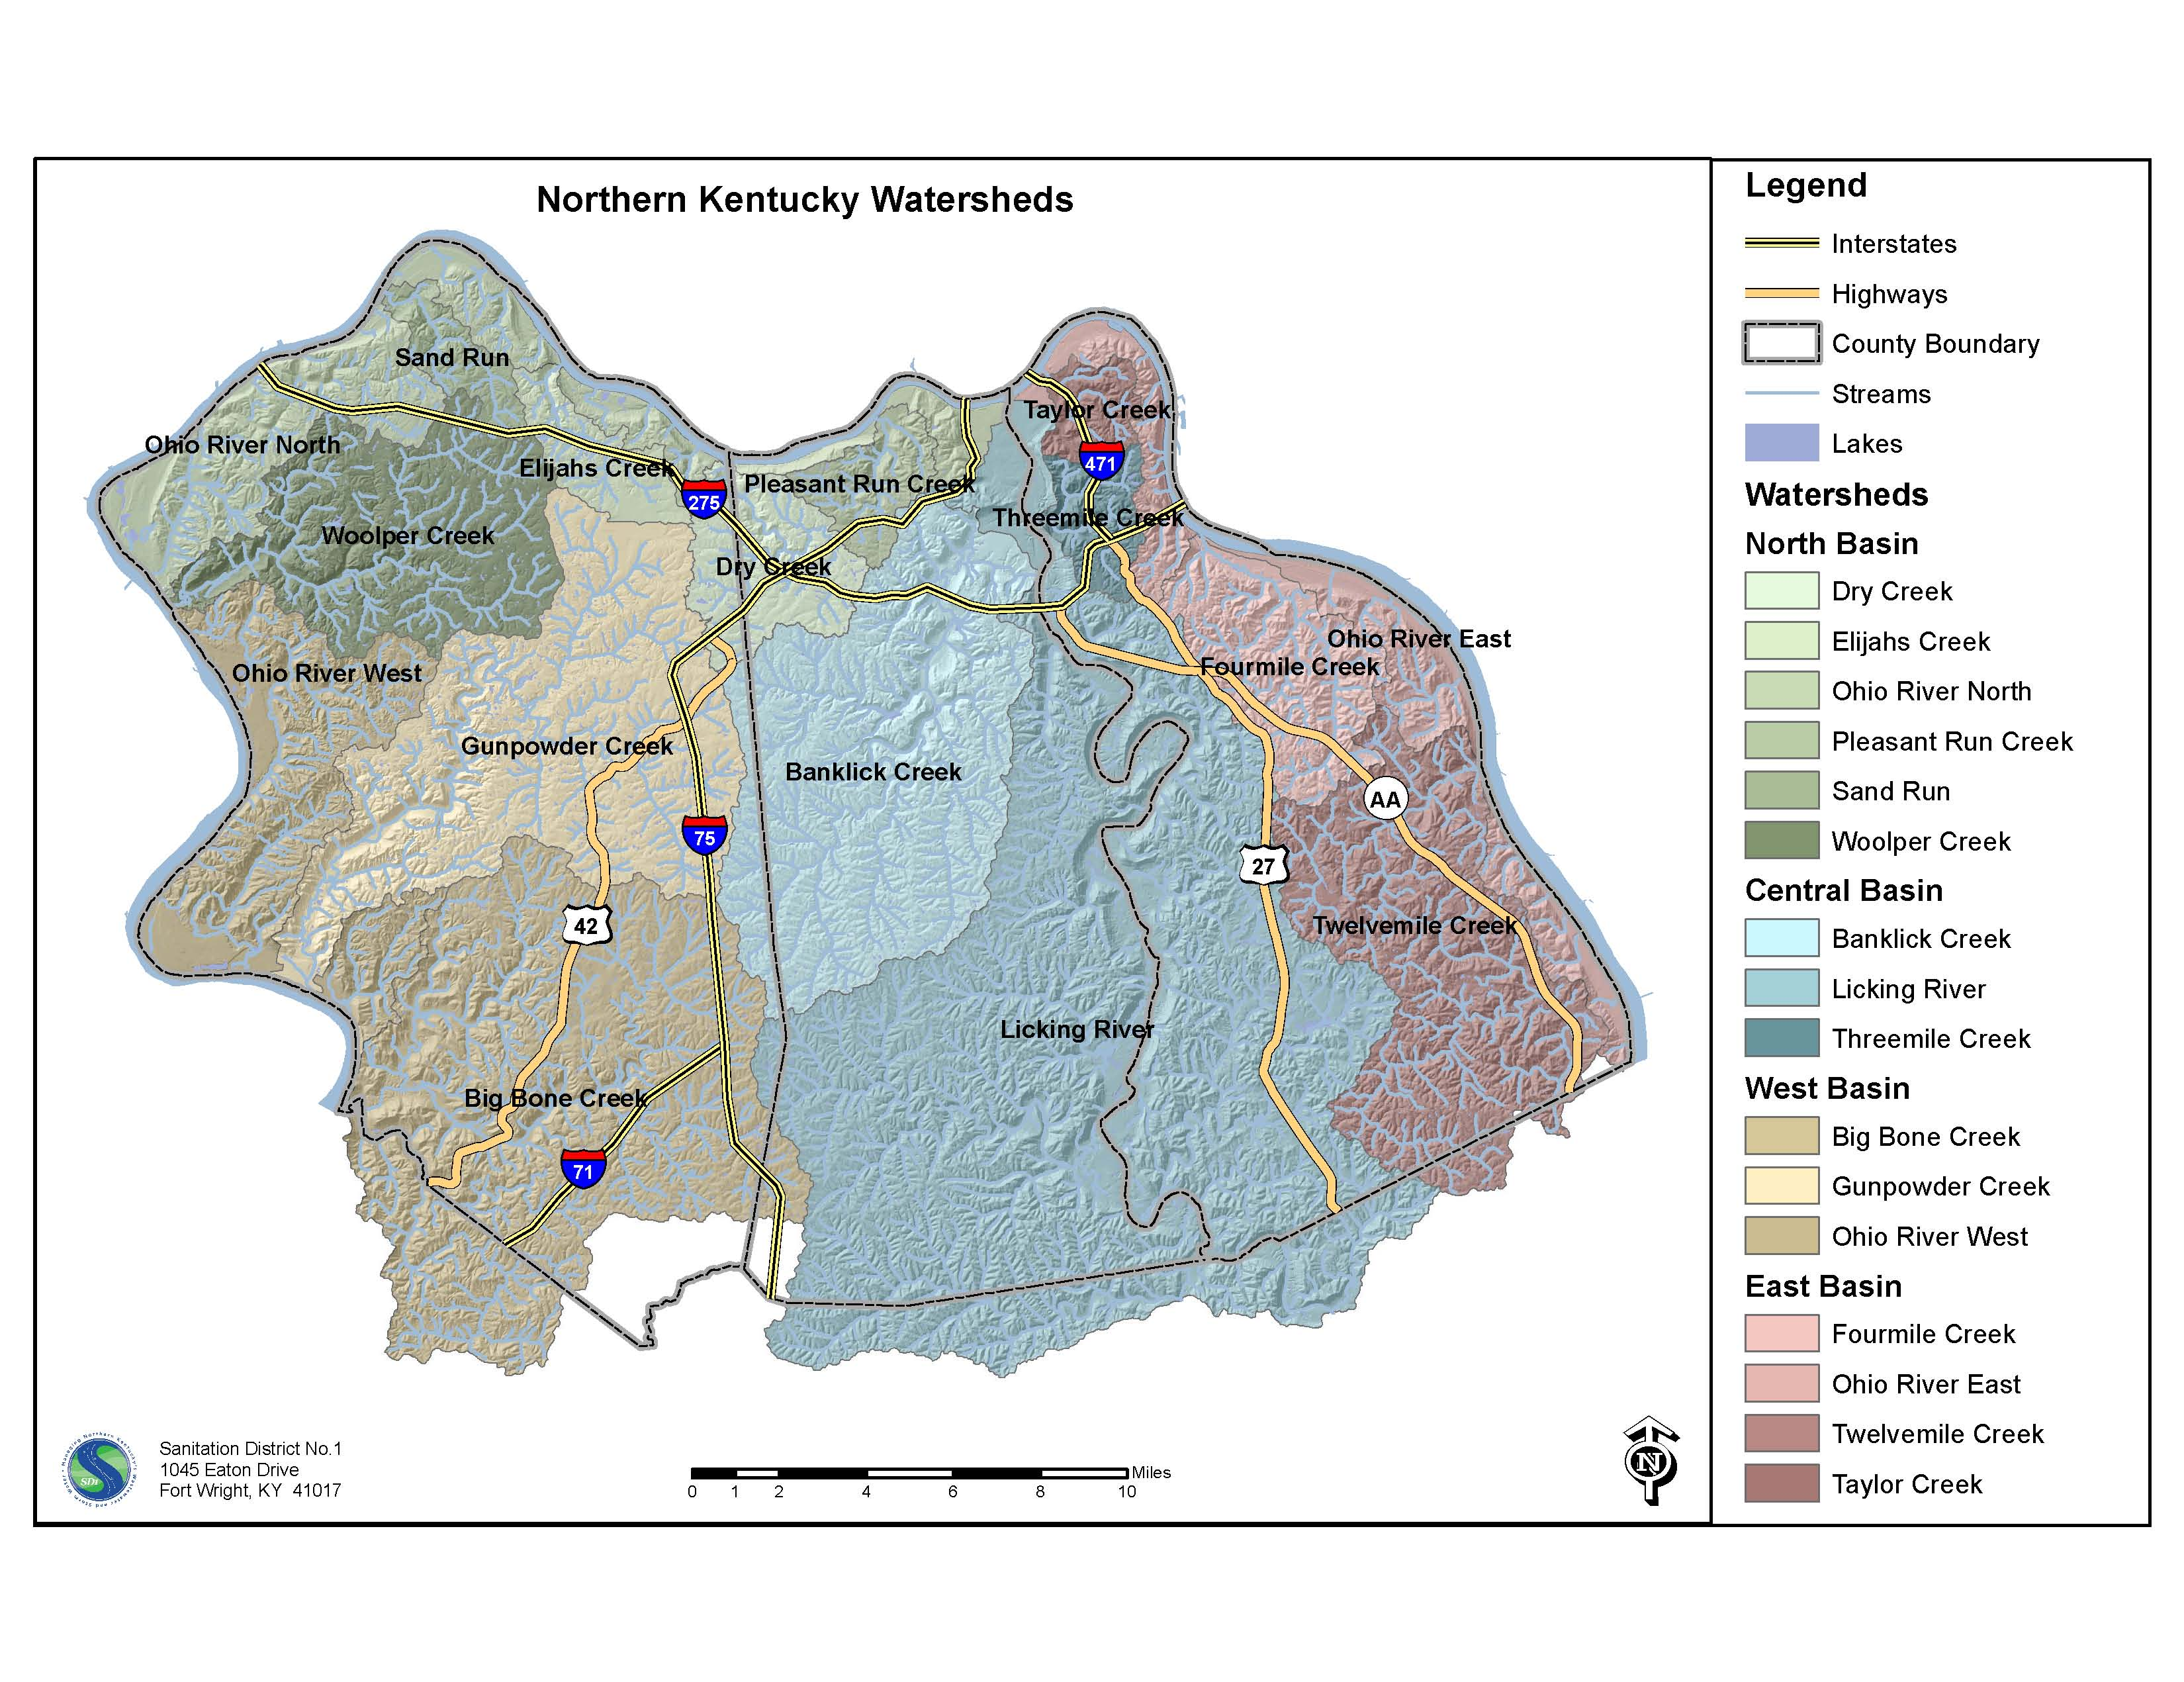 Norther Kentucky Watershed Map (JPG)